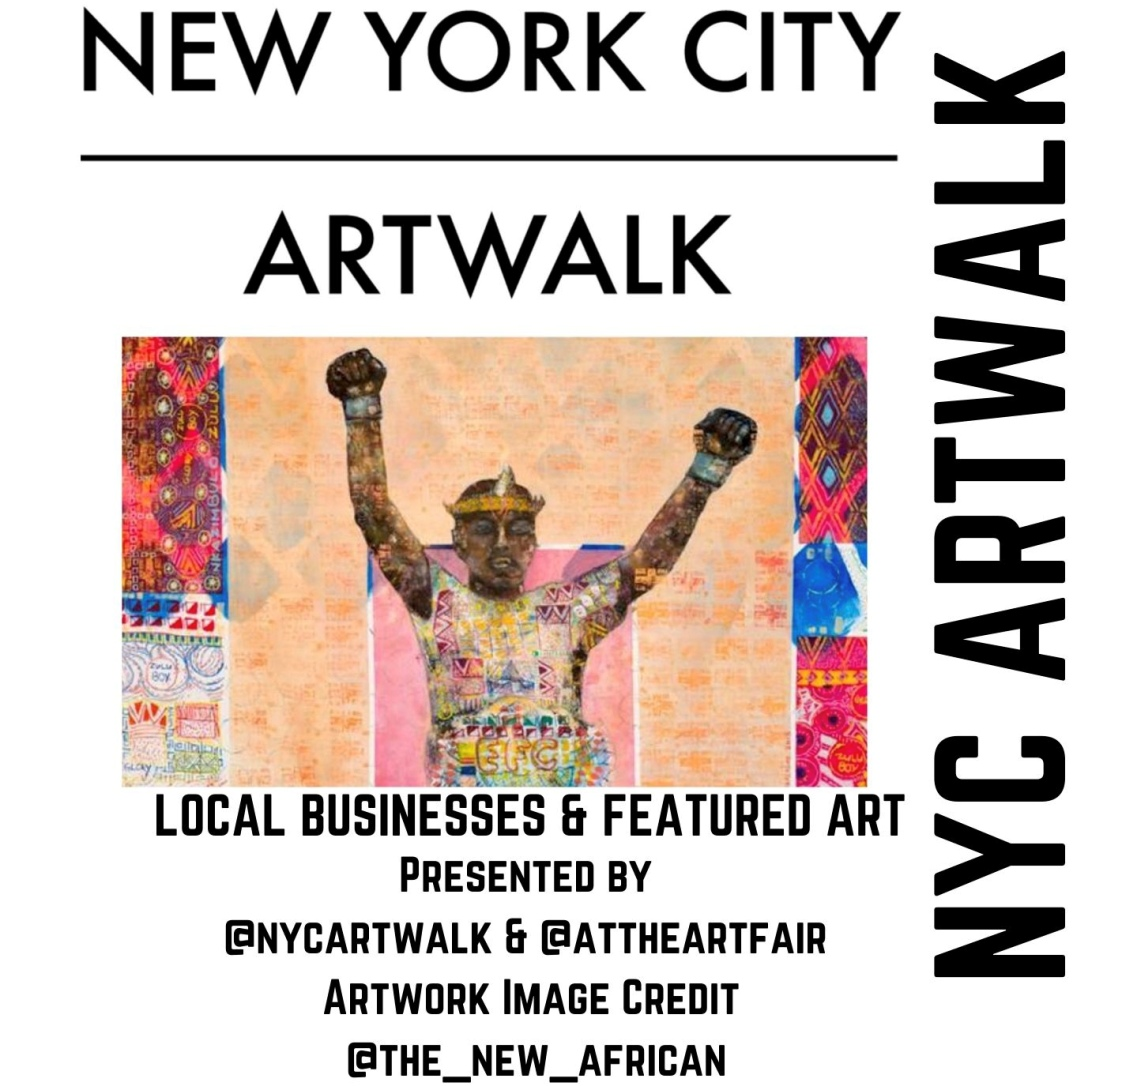 NYC ARTWALK to Bring Art and Culture to the Streets of New York